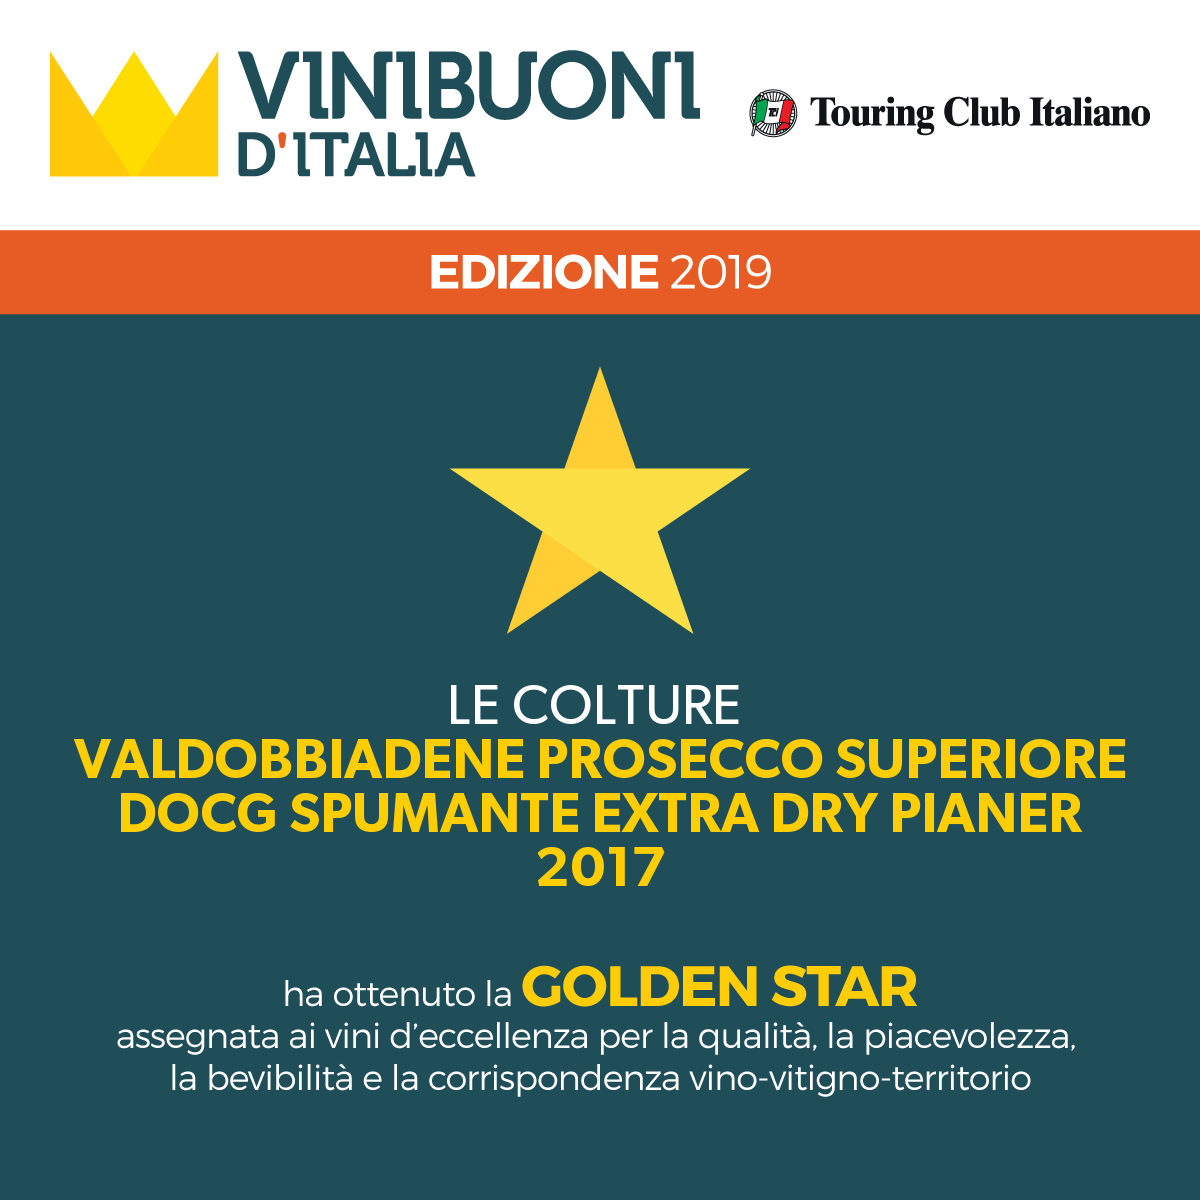 Golden Star by Vinibuoni d'Italia